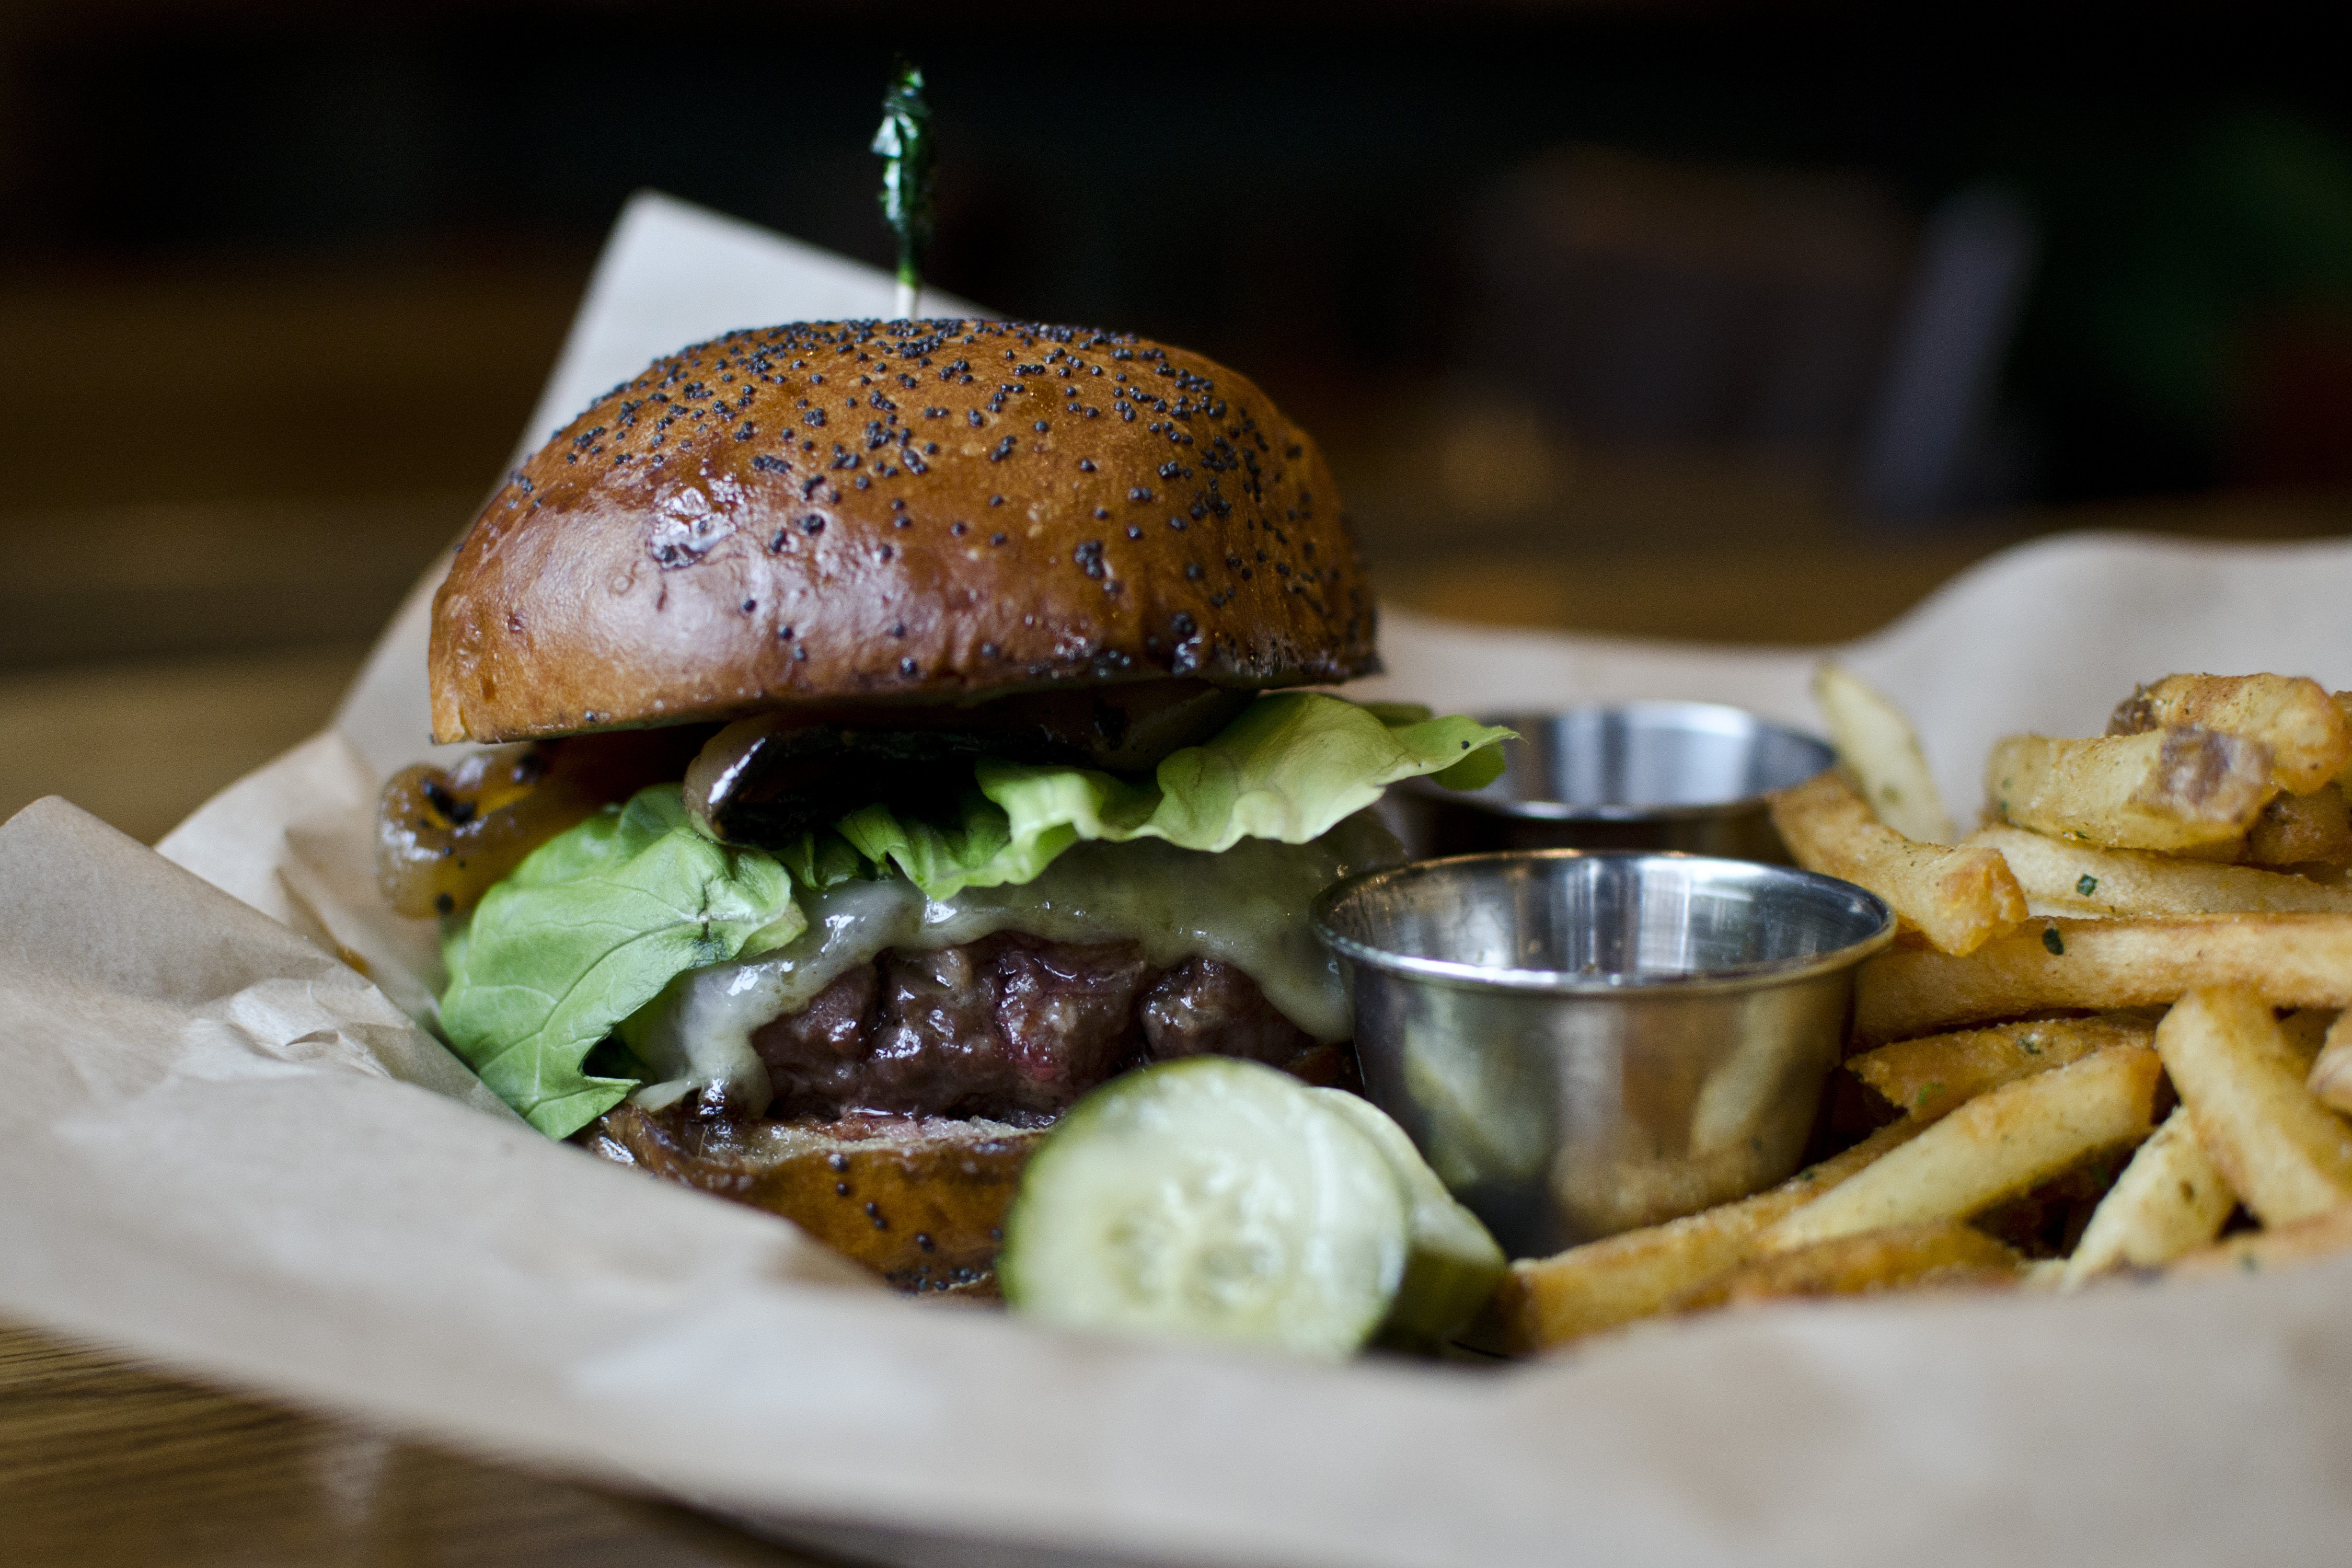 The Kirkland Tap & Trotter burger and fries